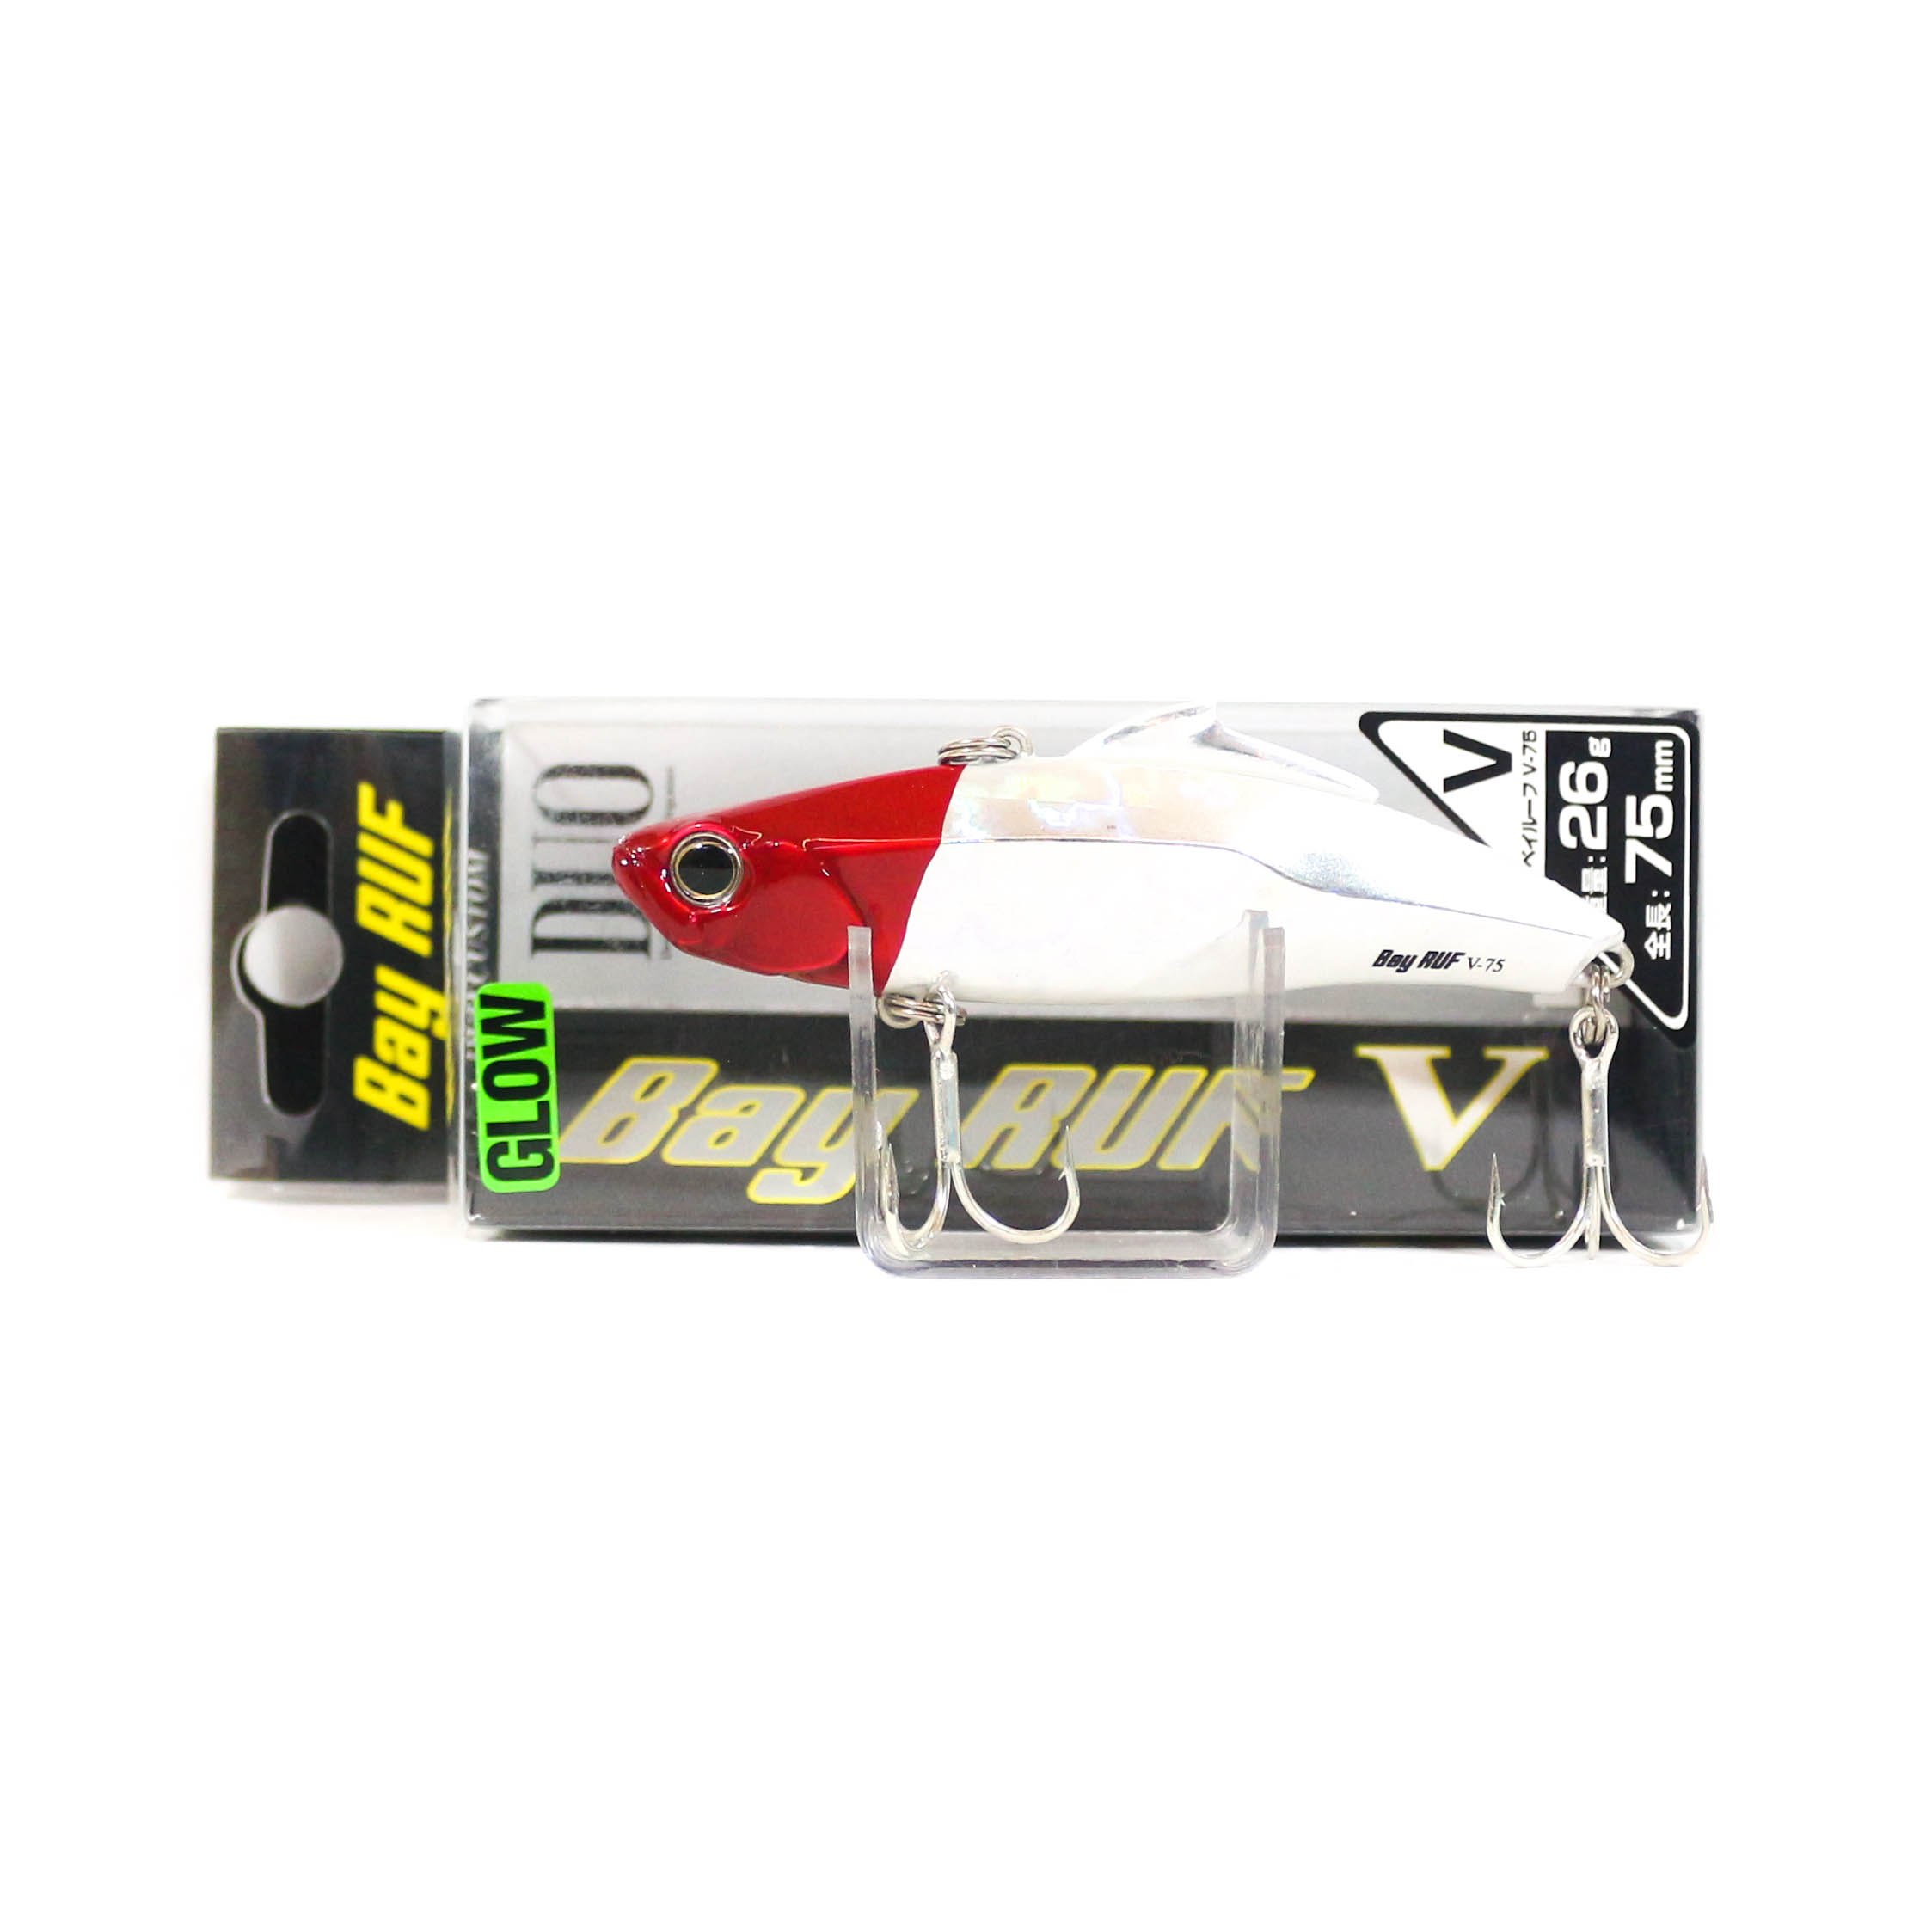 Duo Bay Ruf V-75 26 Grams Heavy Vibration Sinking Lure GB-01 (1130)